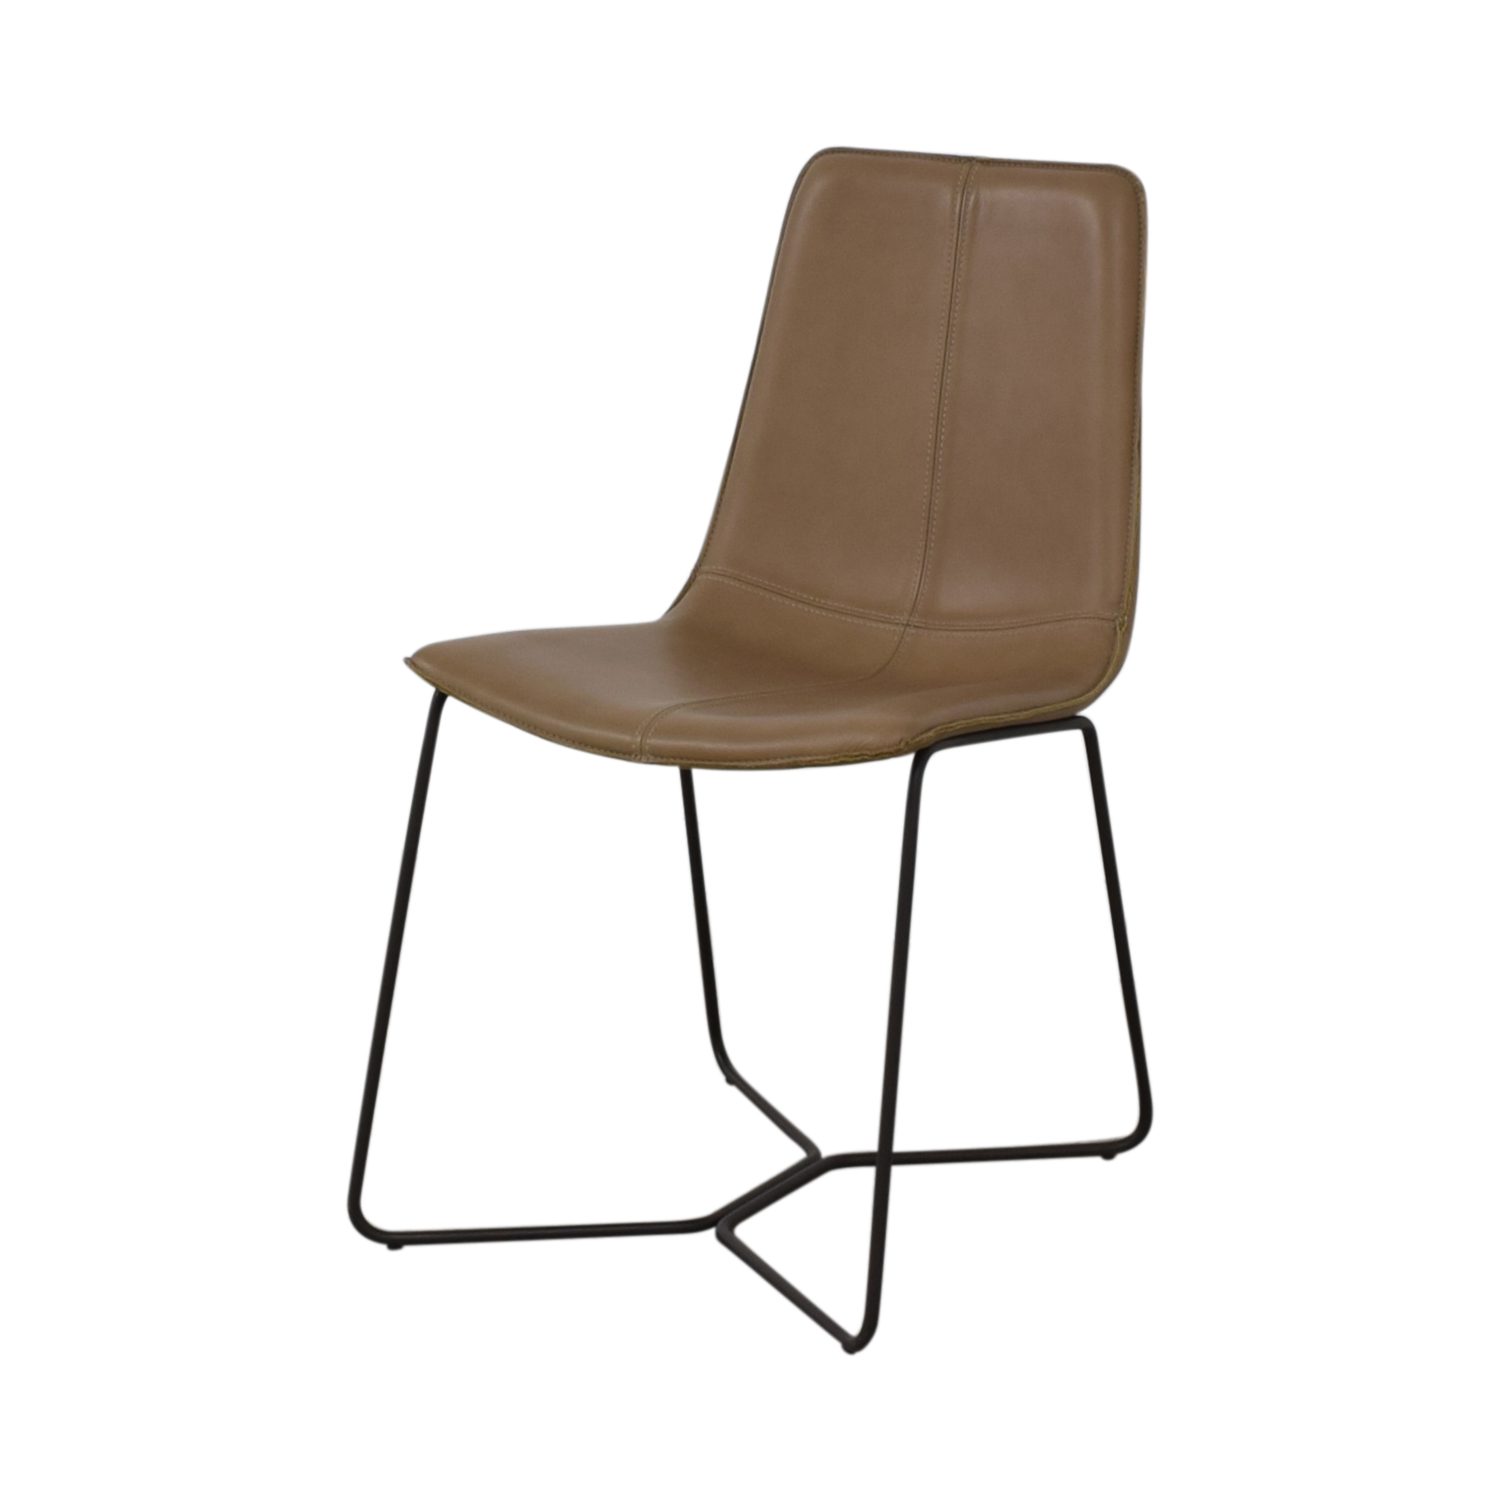 West Elm West Elm Leather Slope Dining Chair Chairs